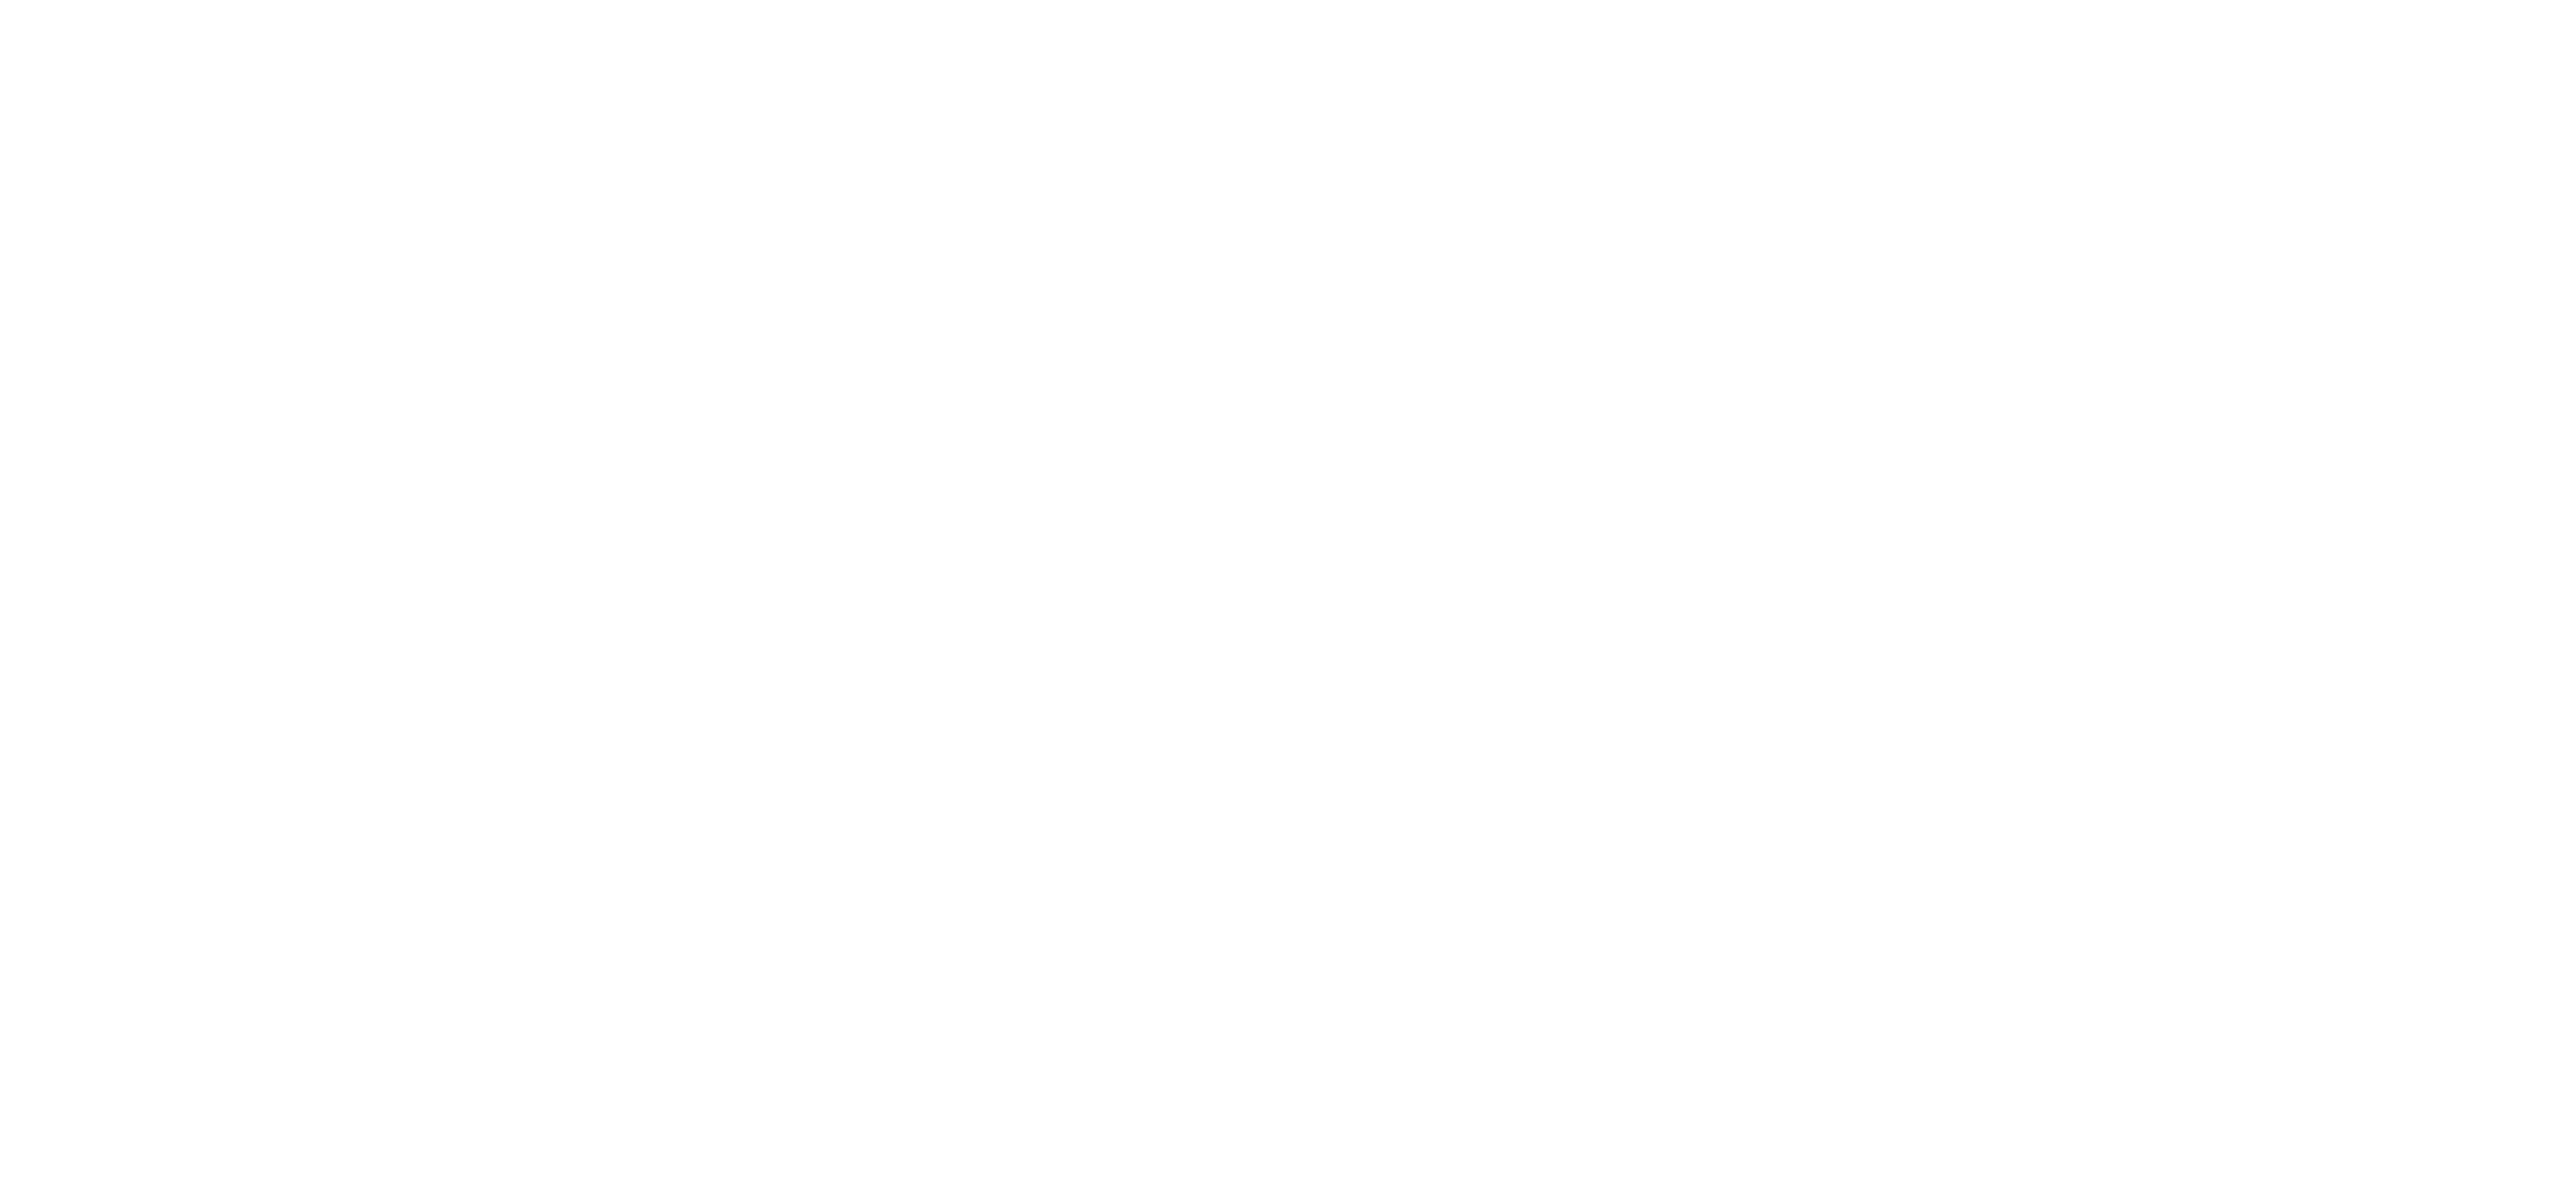 1st Prioity Mortgage